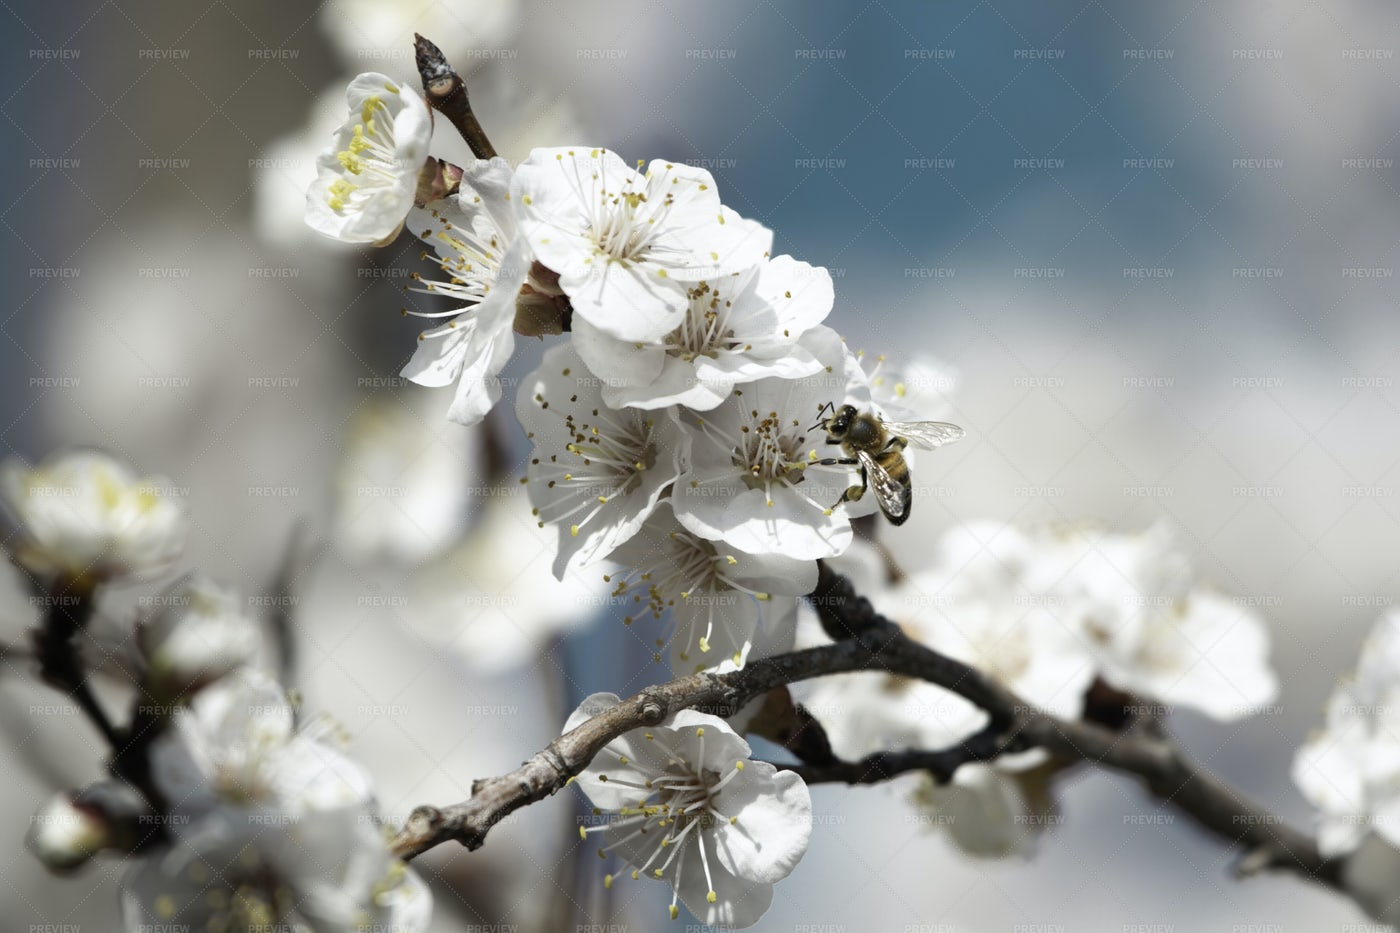 Spring White Flowers On A Tree Branch: Stock Photos